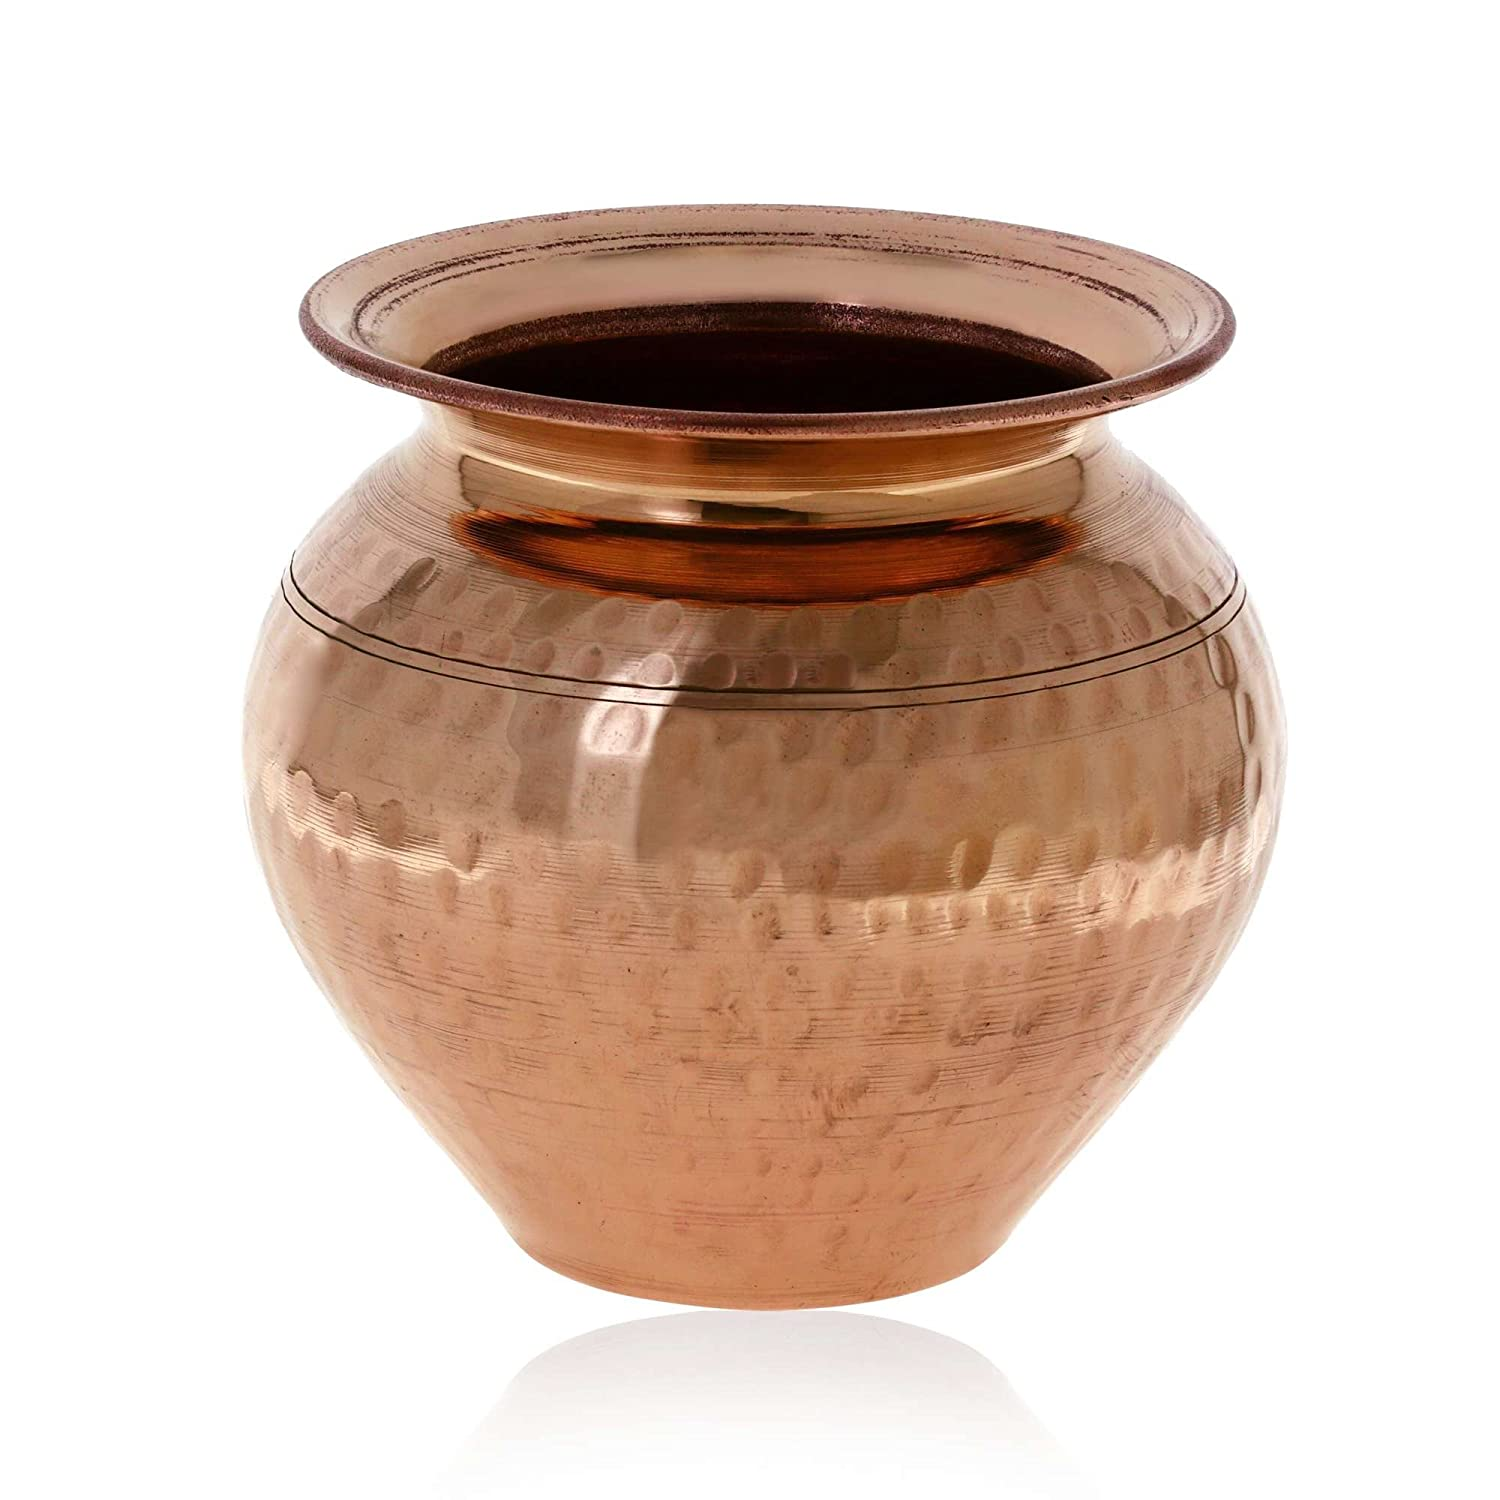 Copper jug Ayurvedic Product Water Pitcher Handmade Indian lota ShalinCraft MN-copper_lota